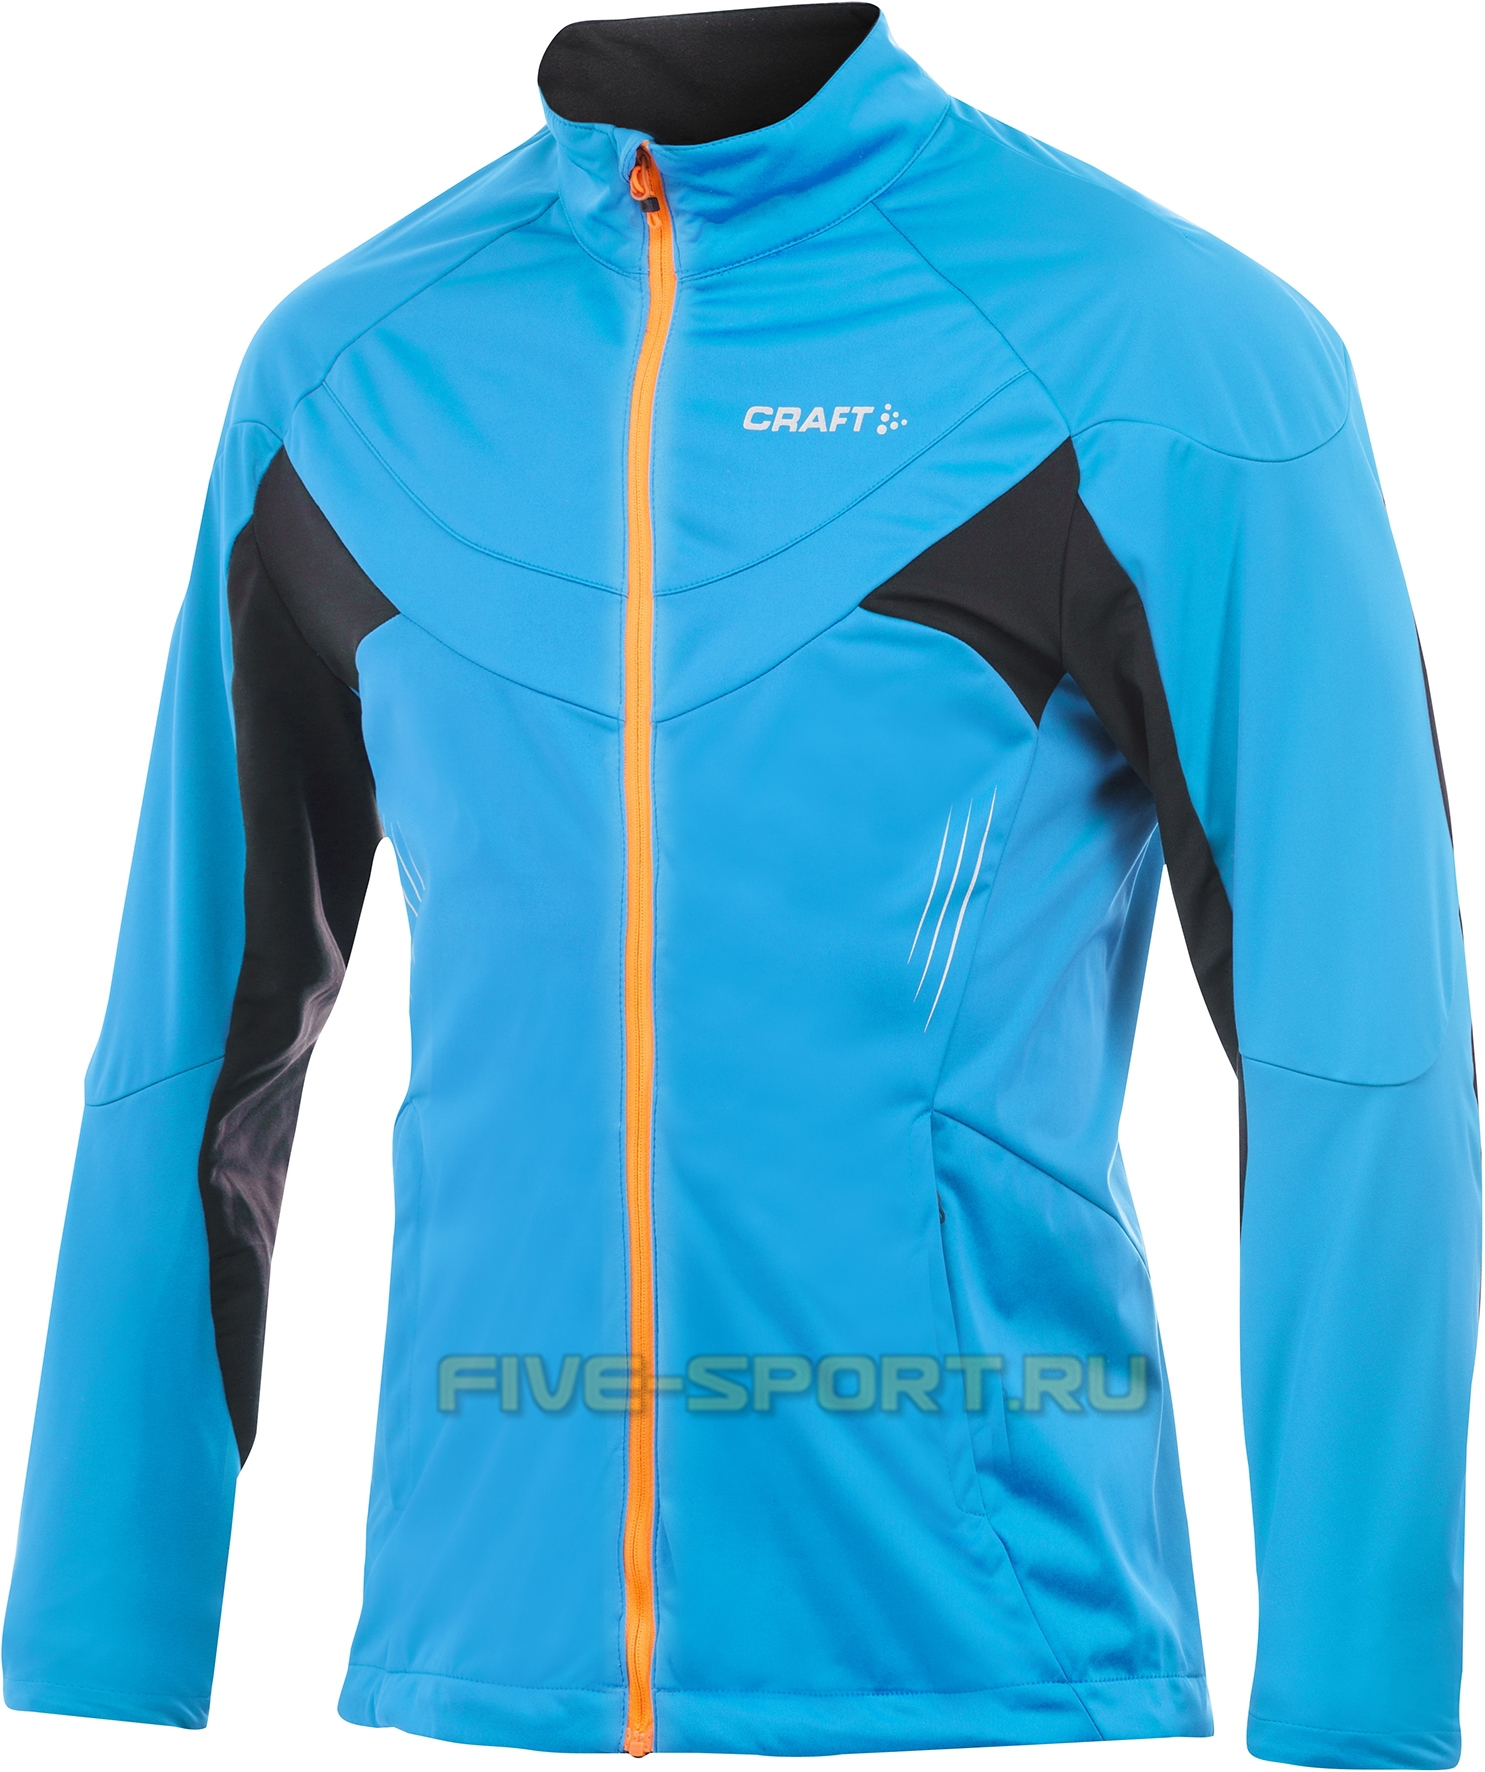 Лыжная куртка Craft PXC High Performance мужская Blue